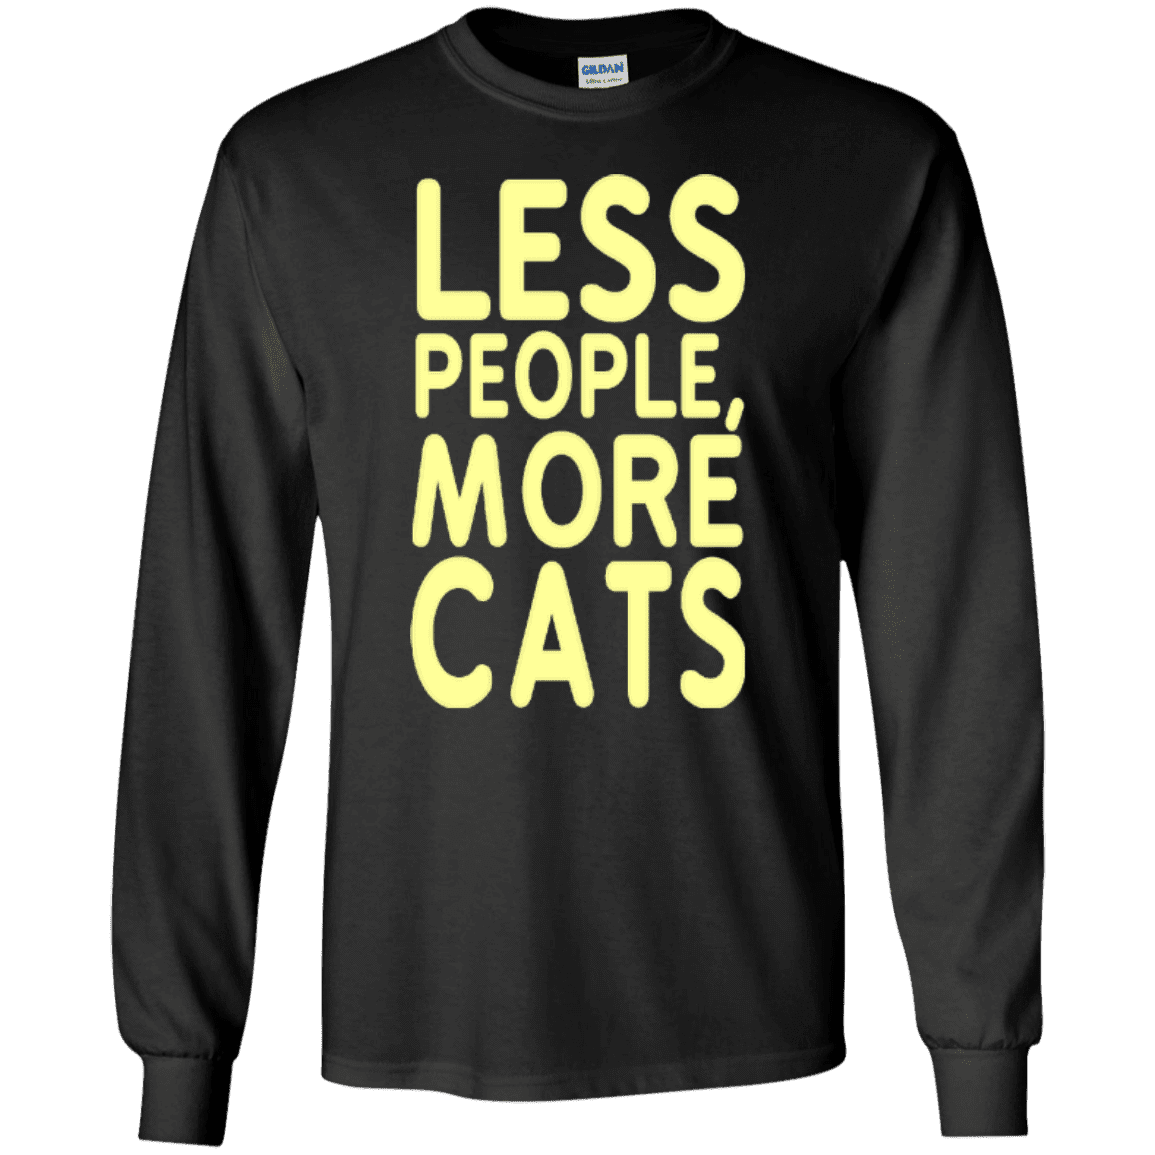 9a65b689f LESS PEOPLE MORE CATS (long) - Boundless Shop